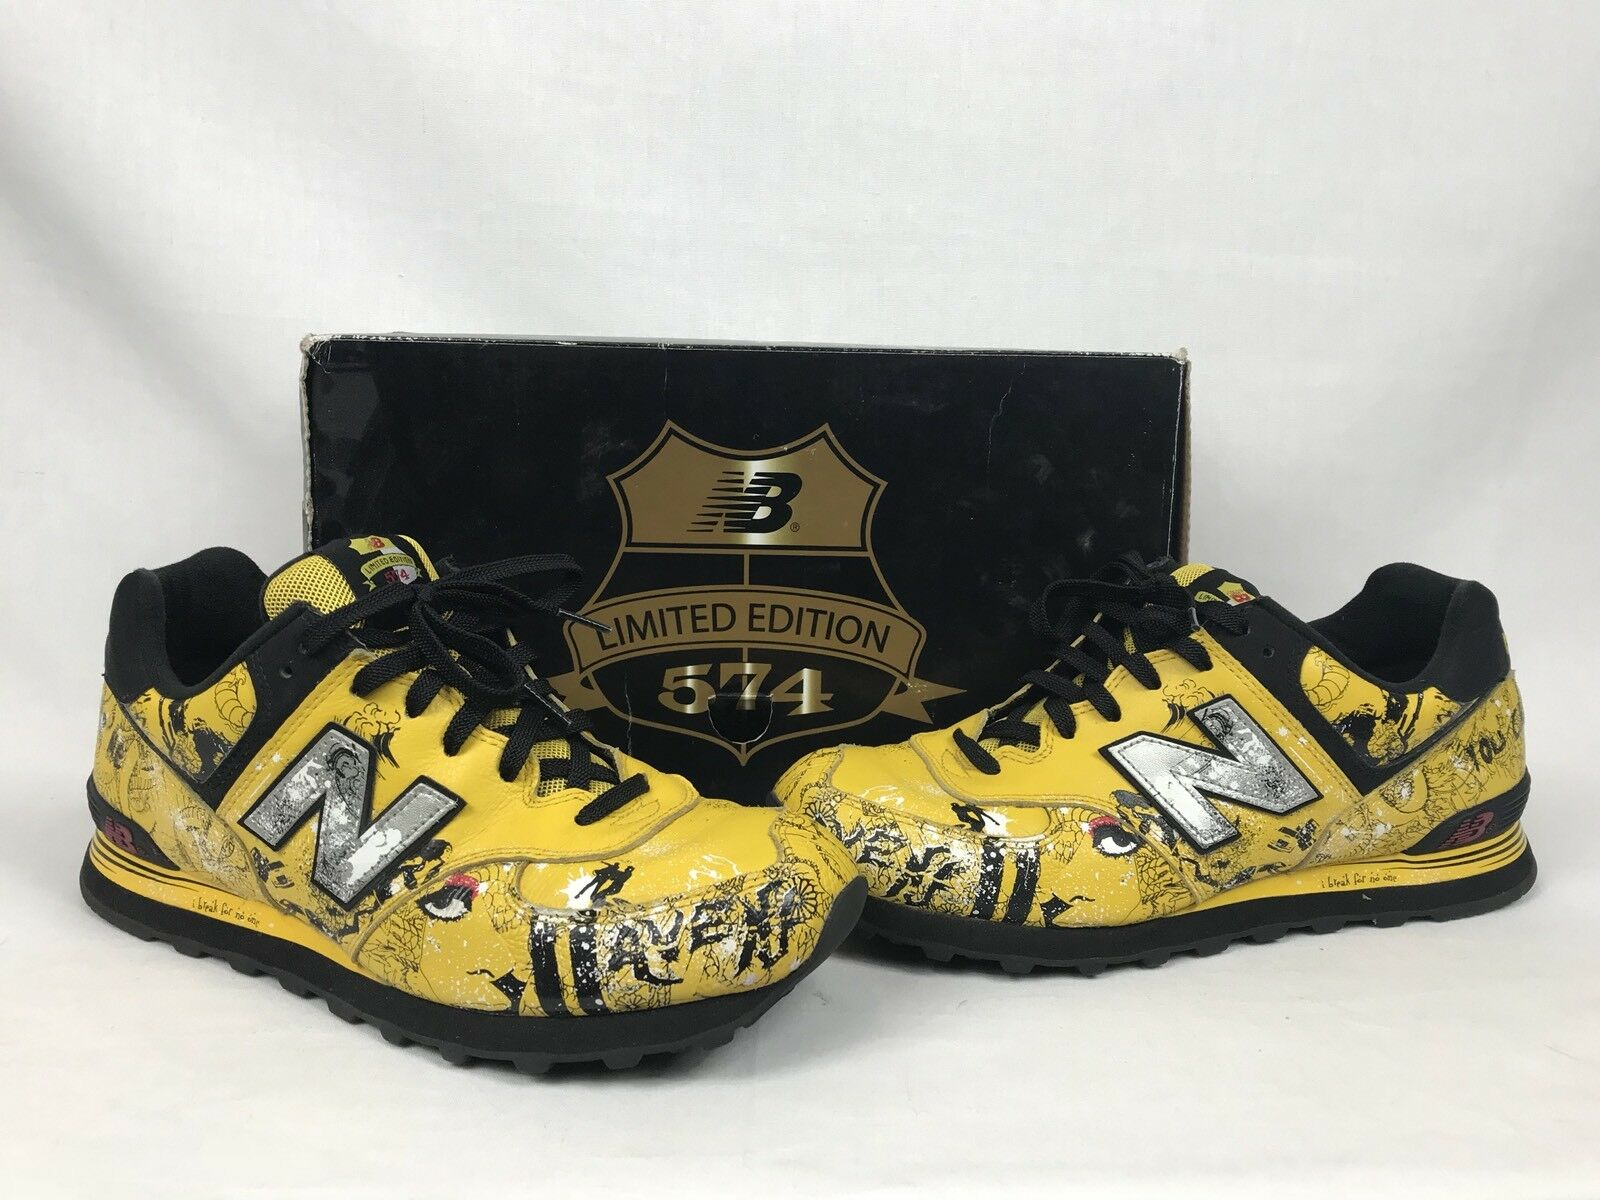 RARE HTF New Balance 574 AVENJ Sean D'Anconia Limited Edition Size 10.5 W/Box